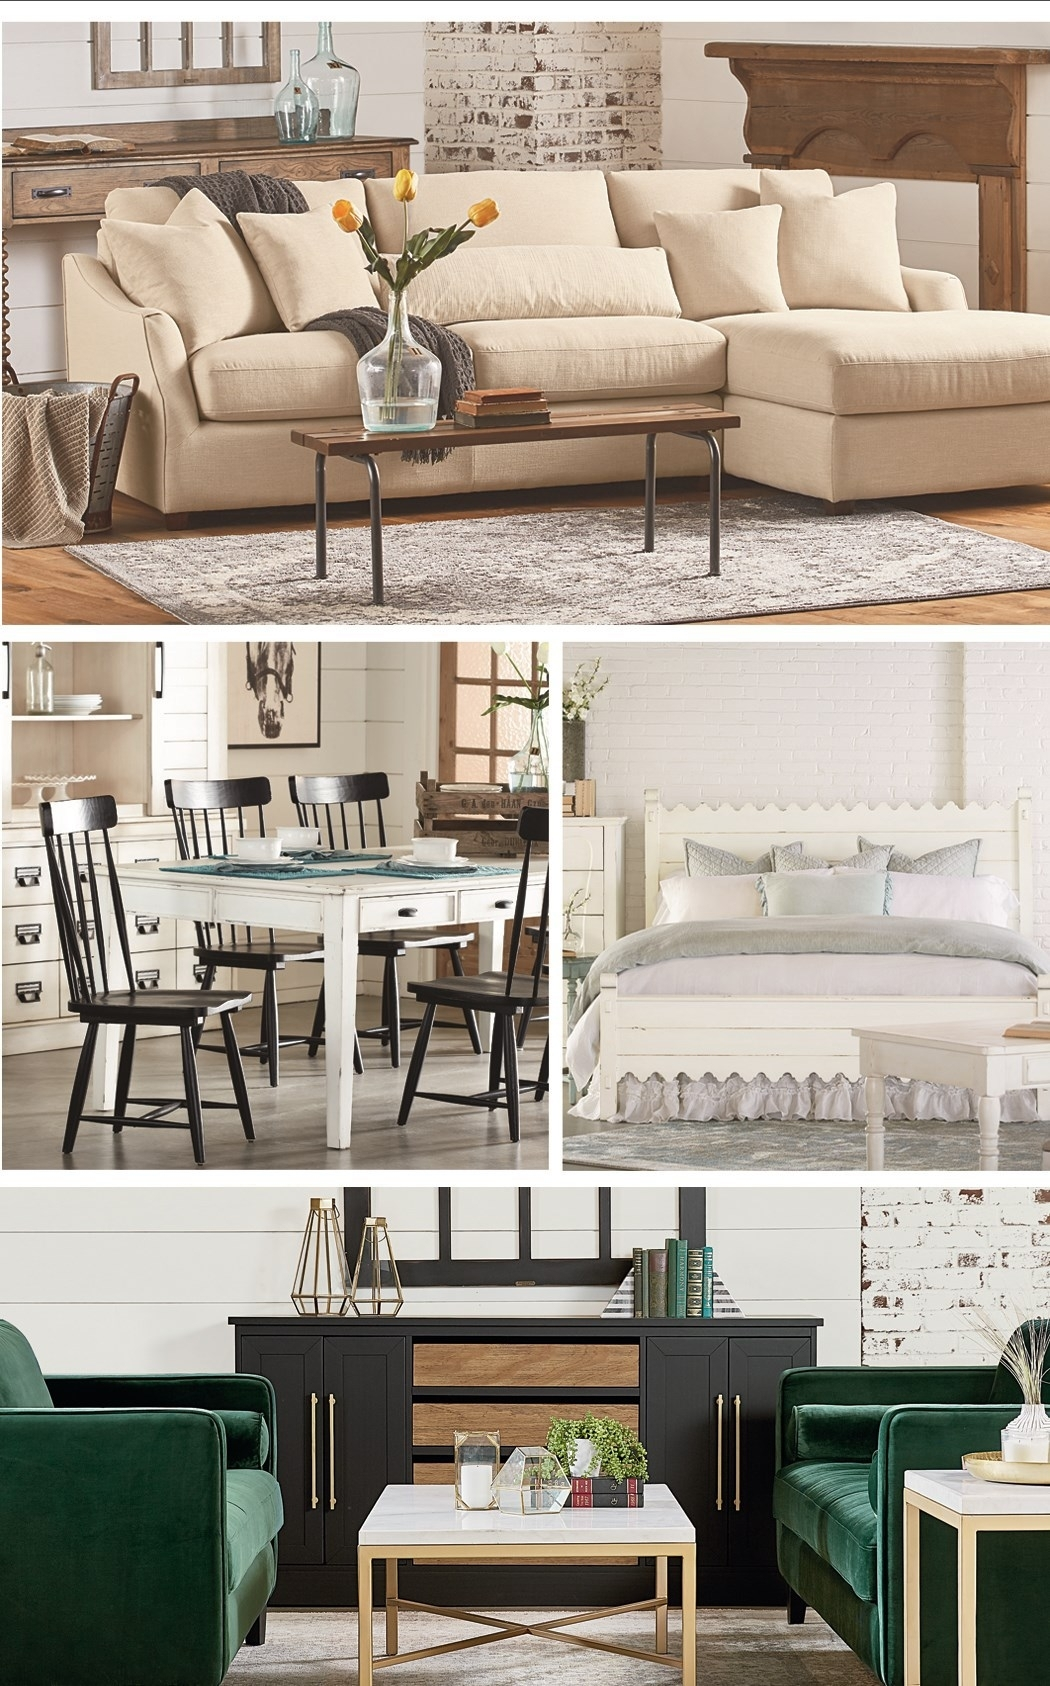 Magnolia Homejoanna Gaines   Jacksonville, Gainesville, Palm Intended For Magnolia Home Homestead 3 Piece Sectionals By Joanna Gaines (Image 22 of 25)